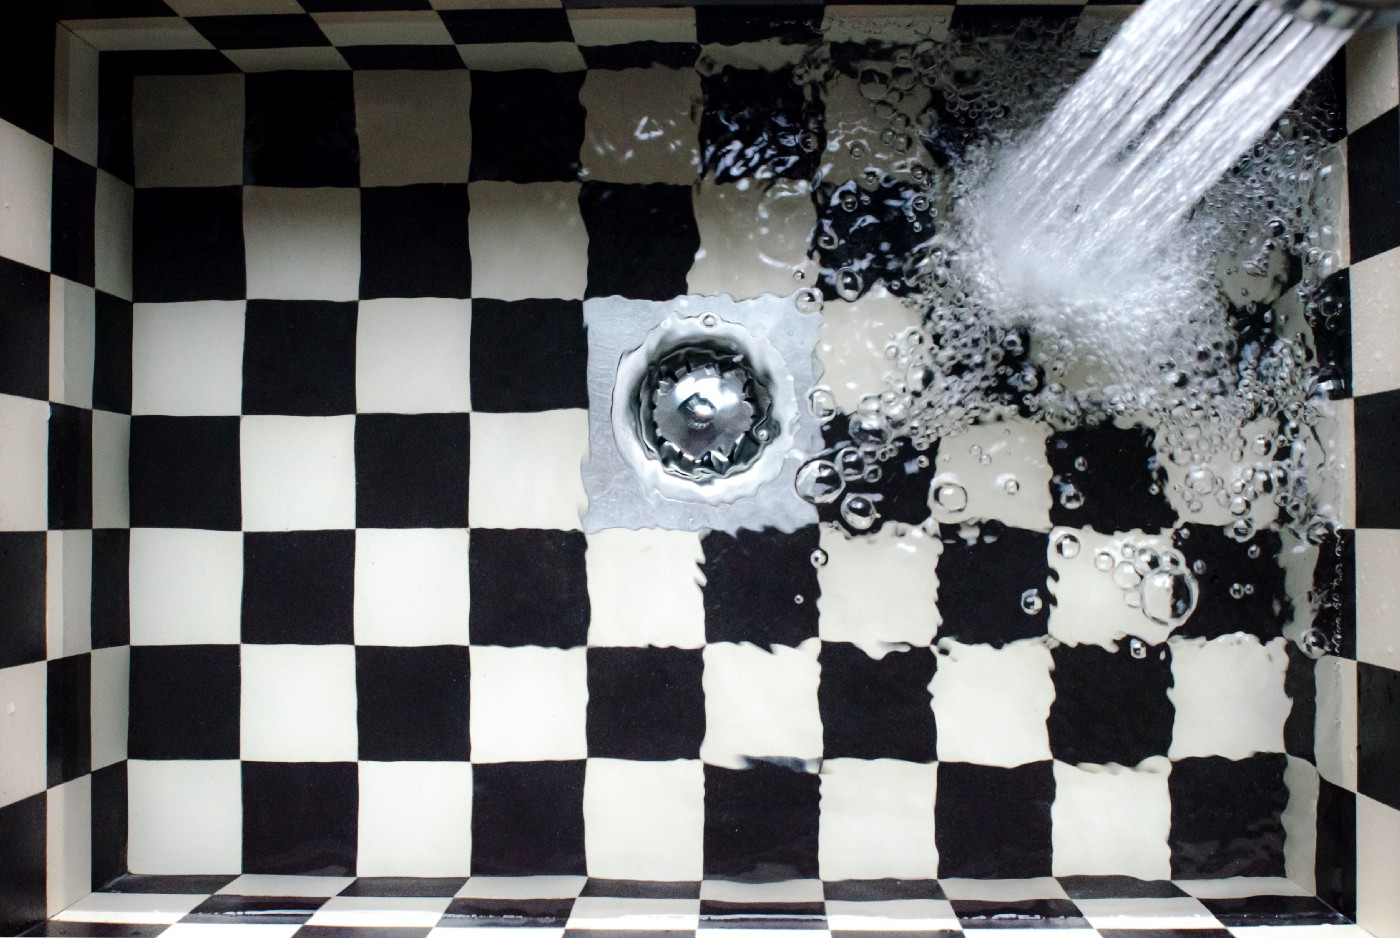 Water going down the drain in a black-and-white tiled shower.